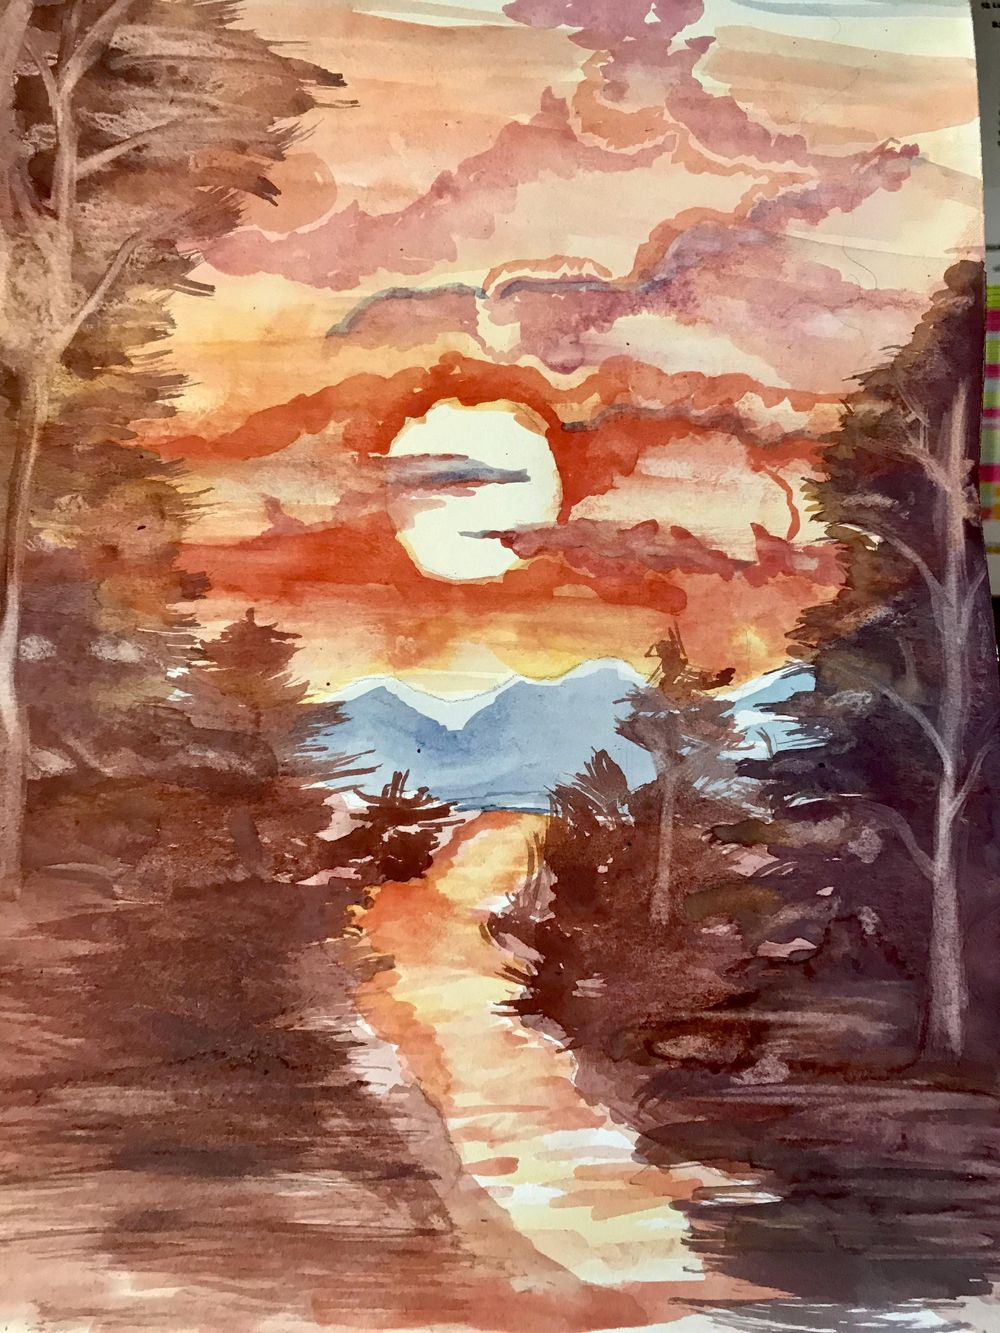 bIANCA'S SUNSET - image 1 - student project